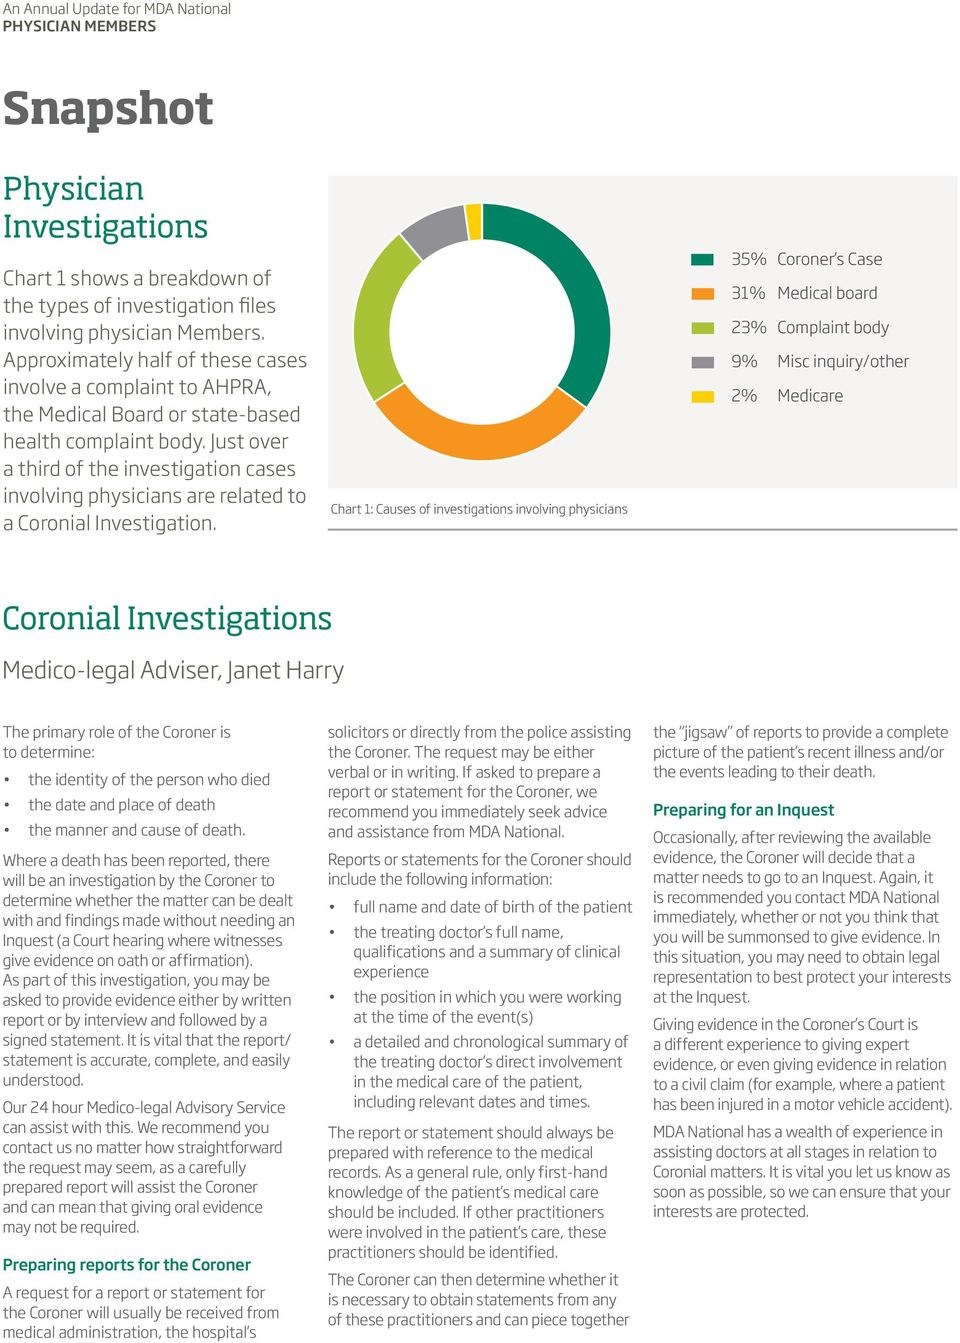 Just over a third of the investigation cases involving physicians are related to a Coronial Investigation.